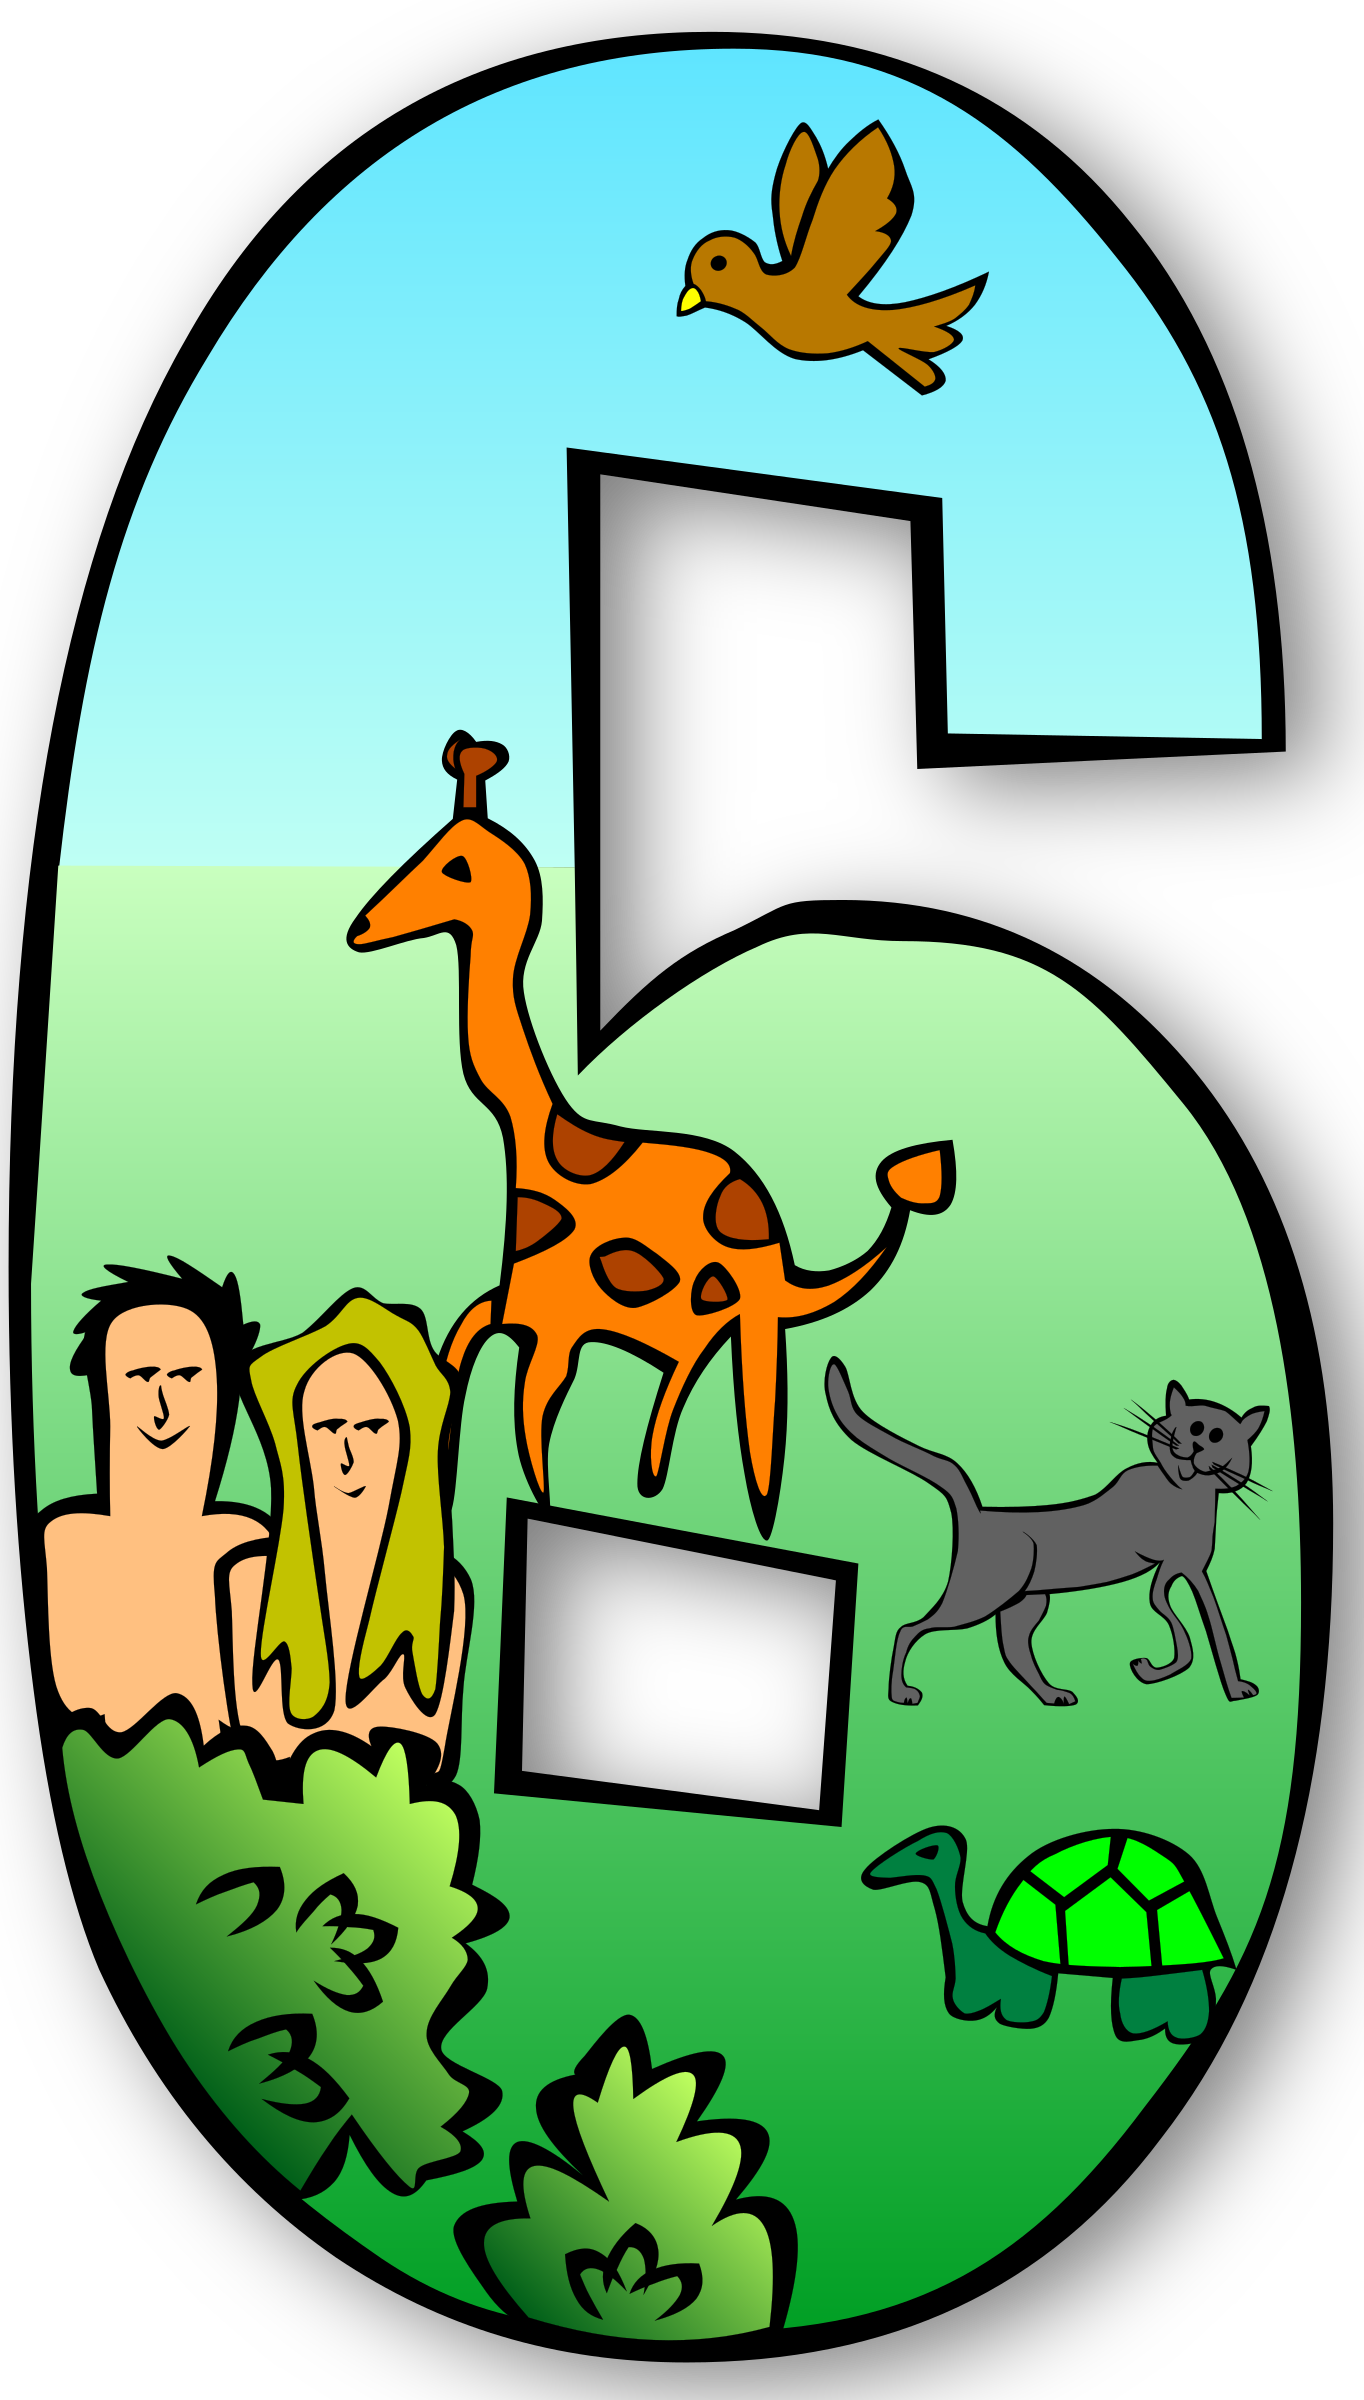 1 clipart day creation. Days numbers big image